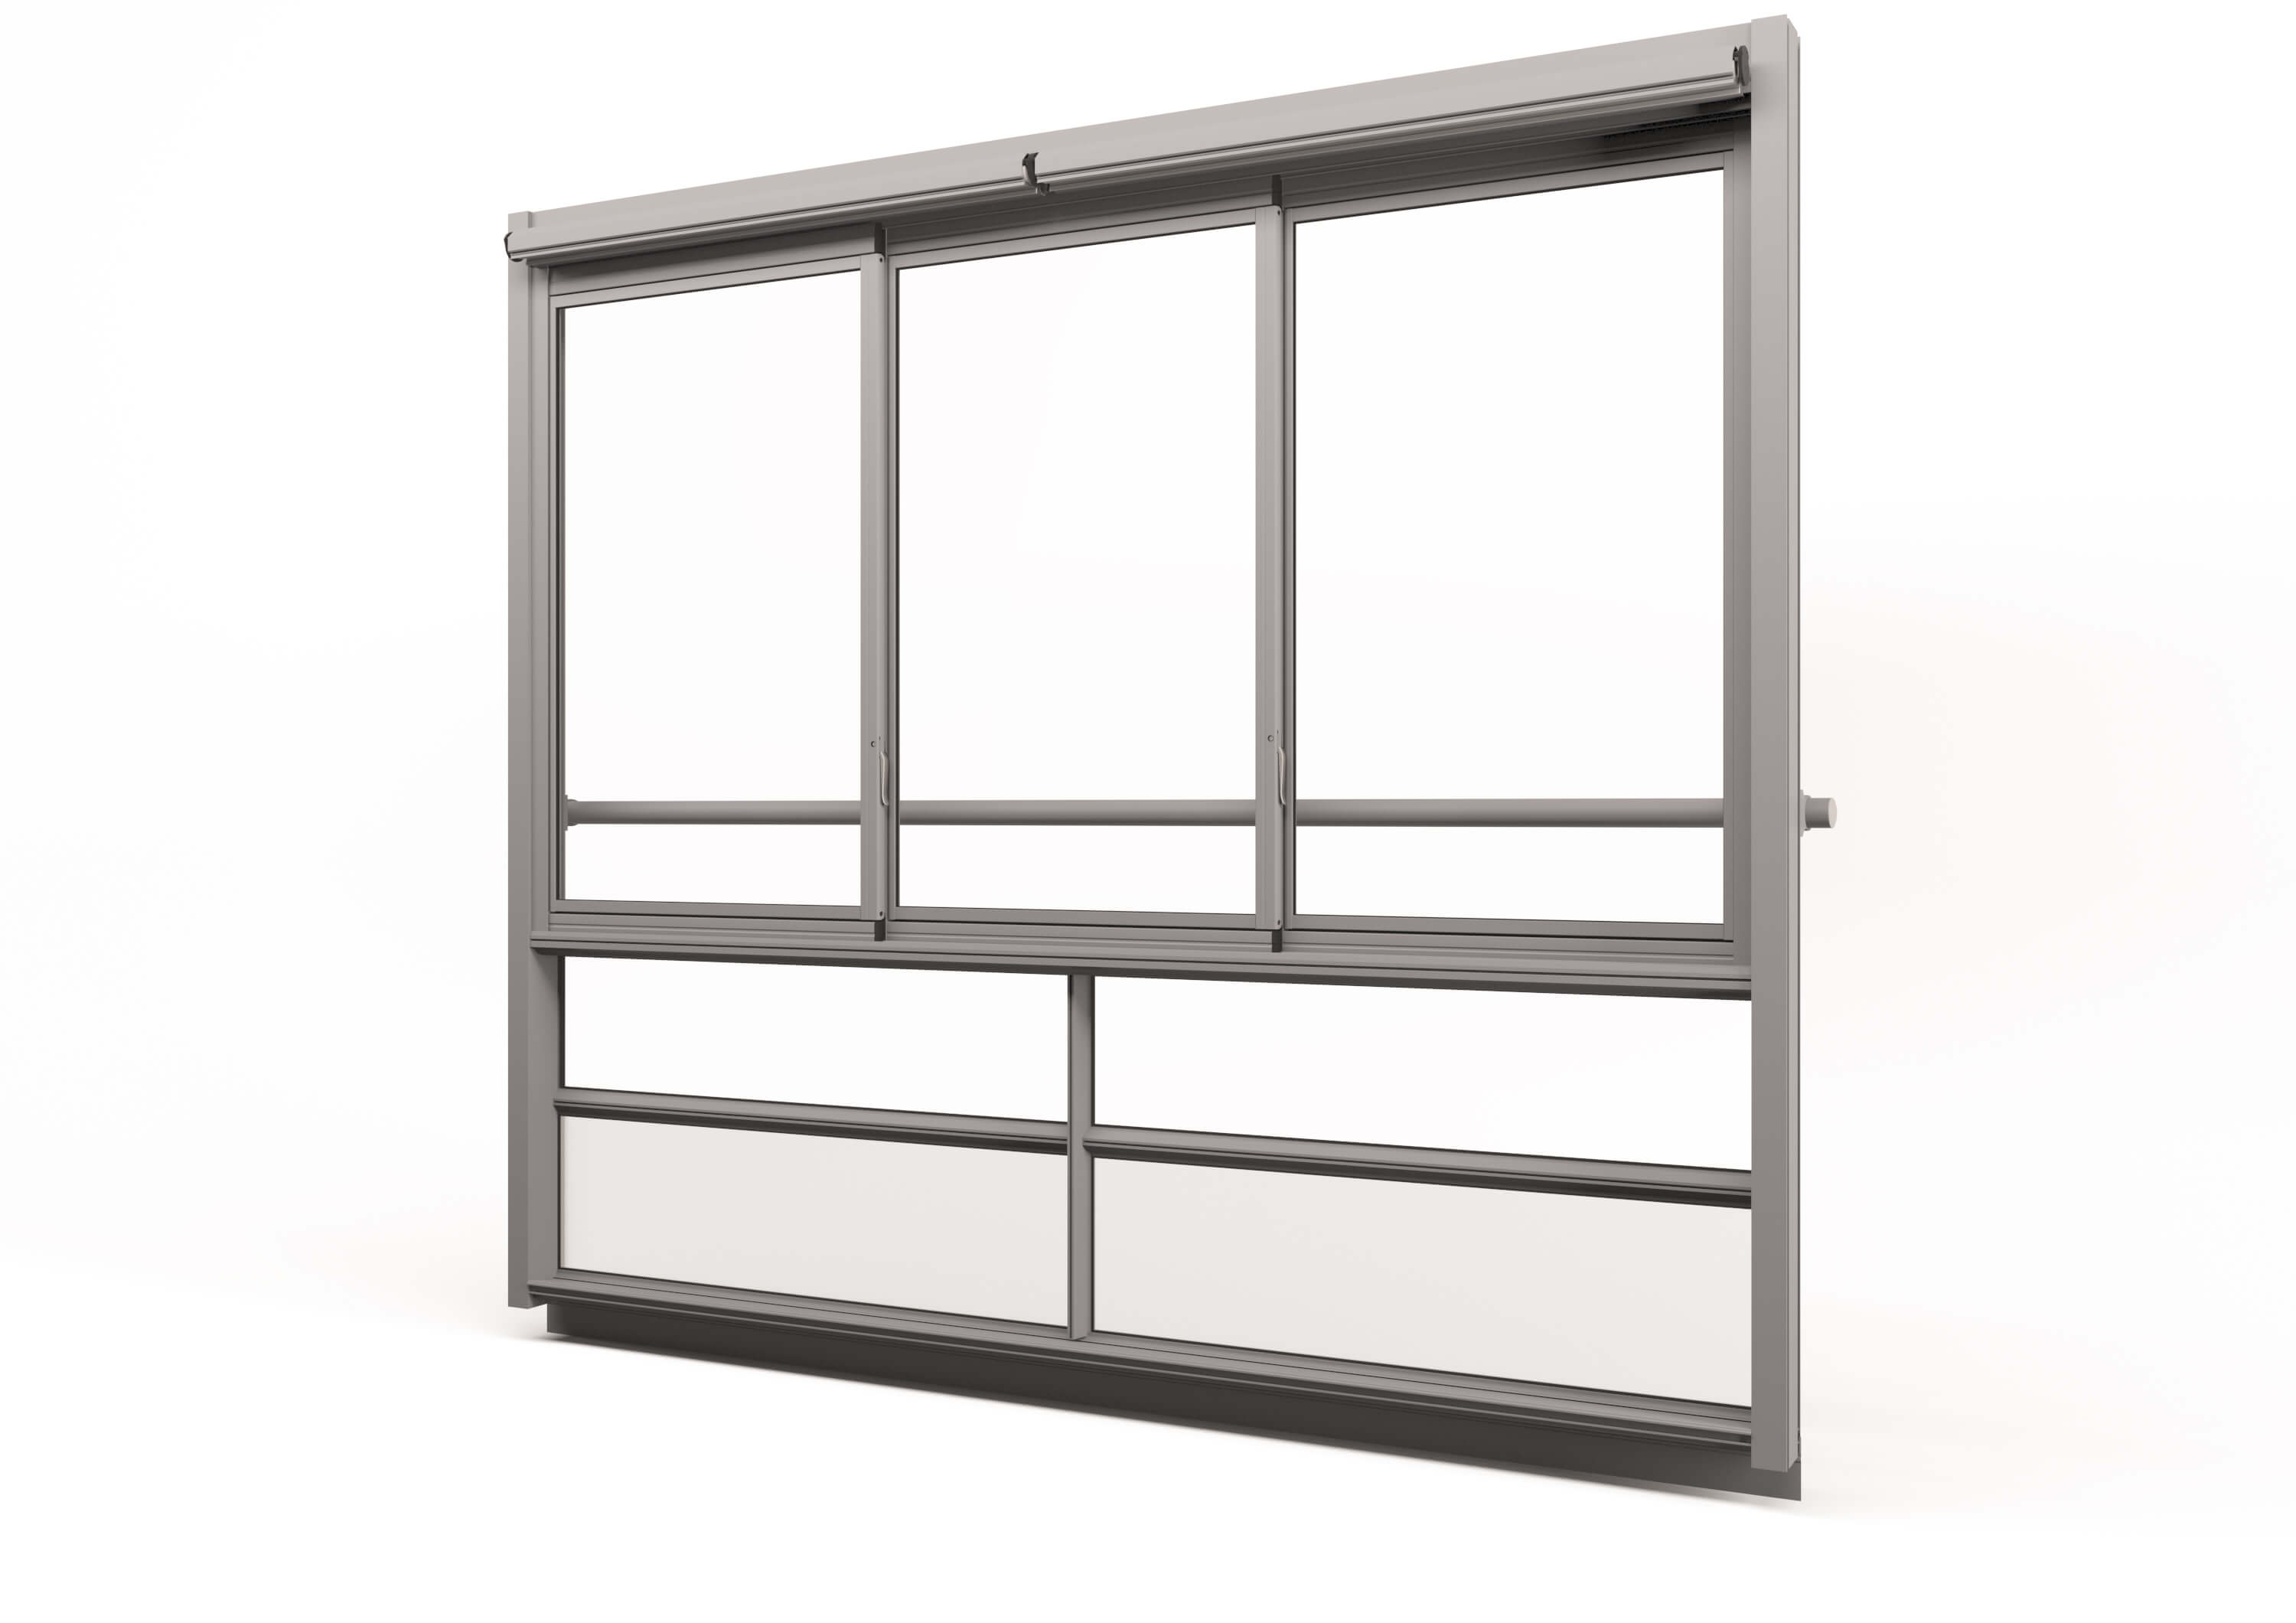 Framed window – Twin®